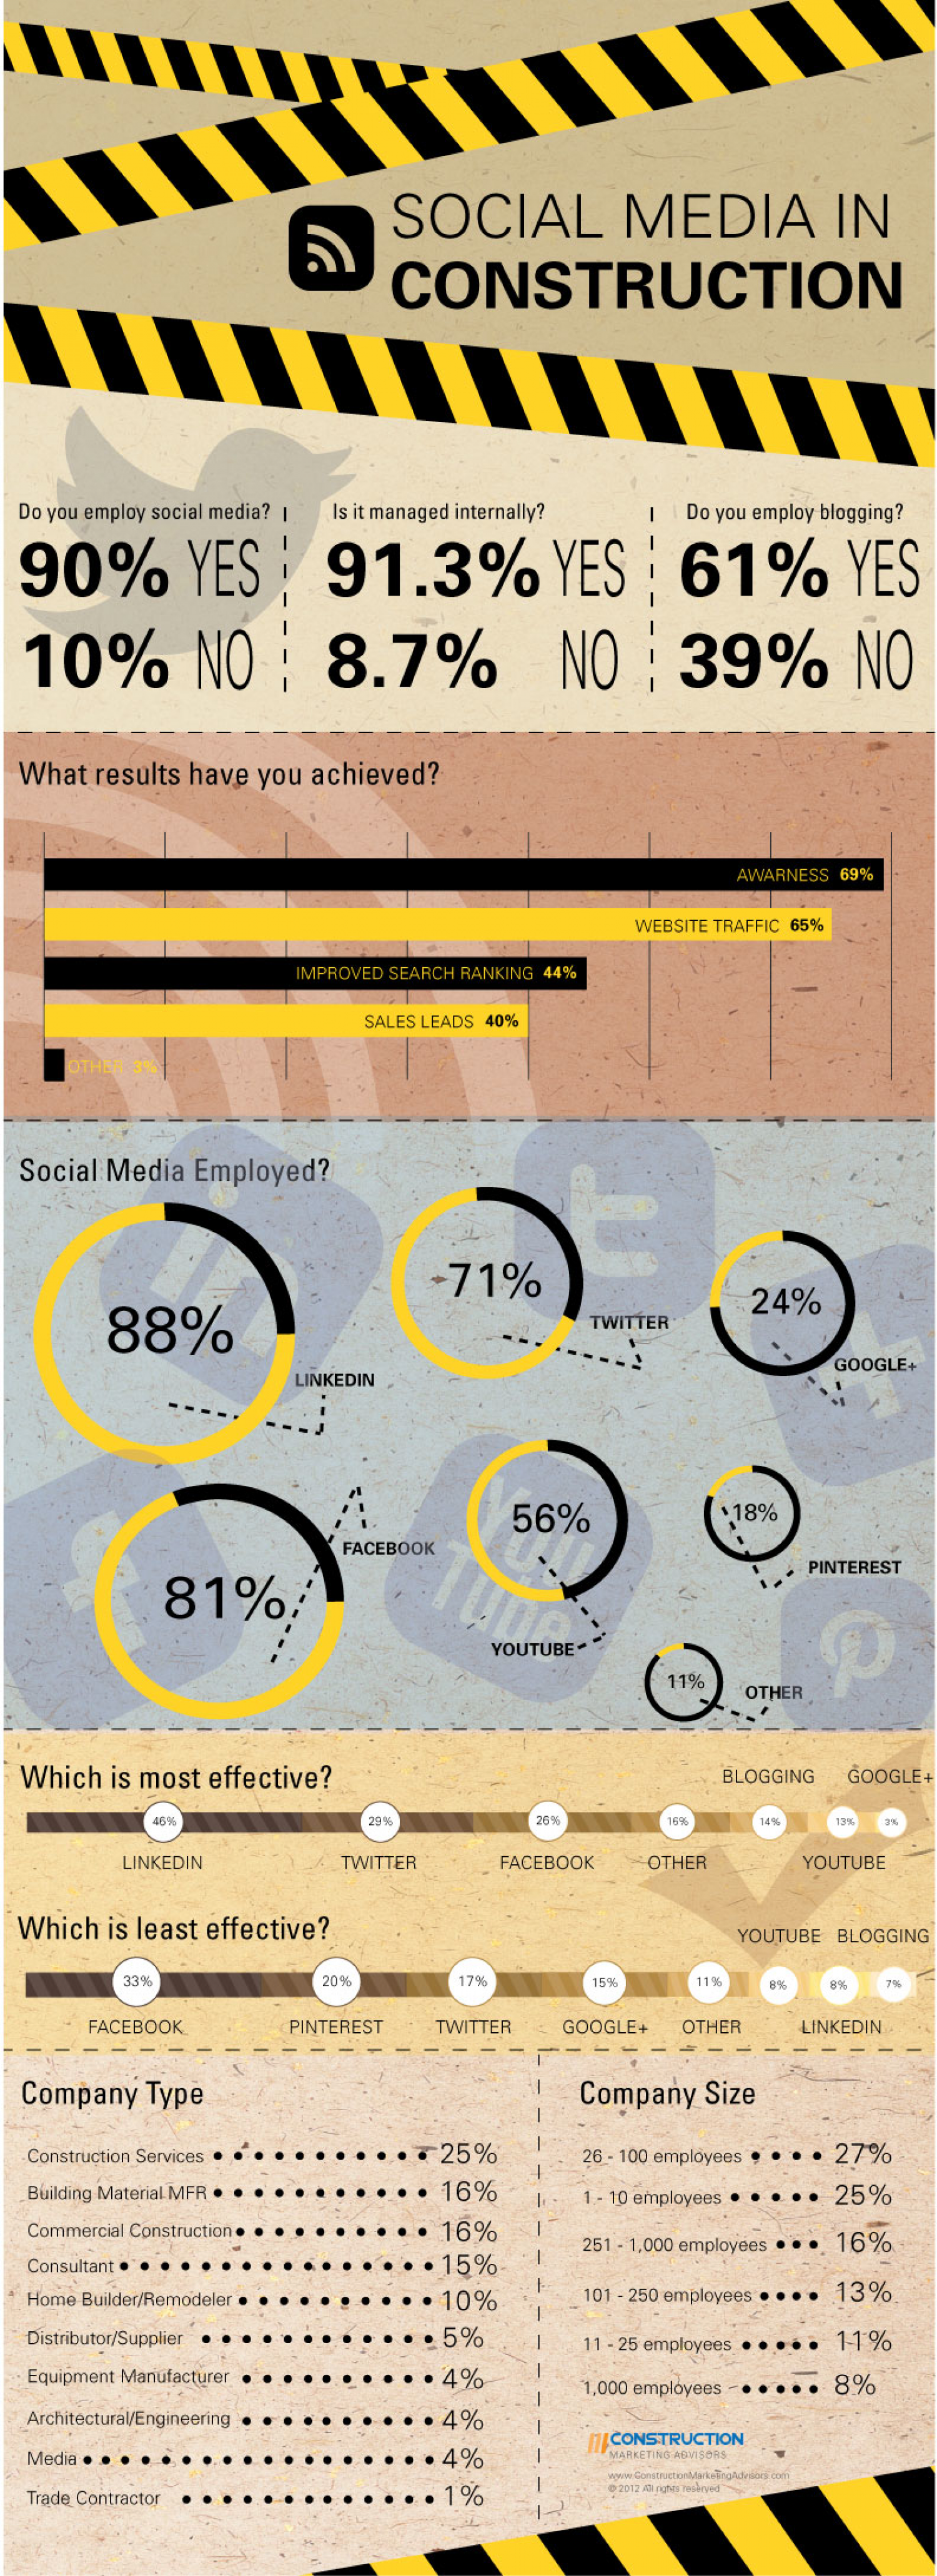 Social Media in Construction  Infographic